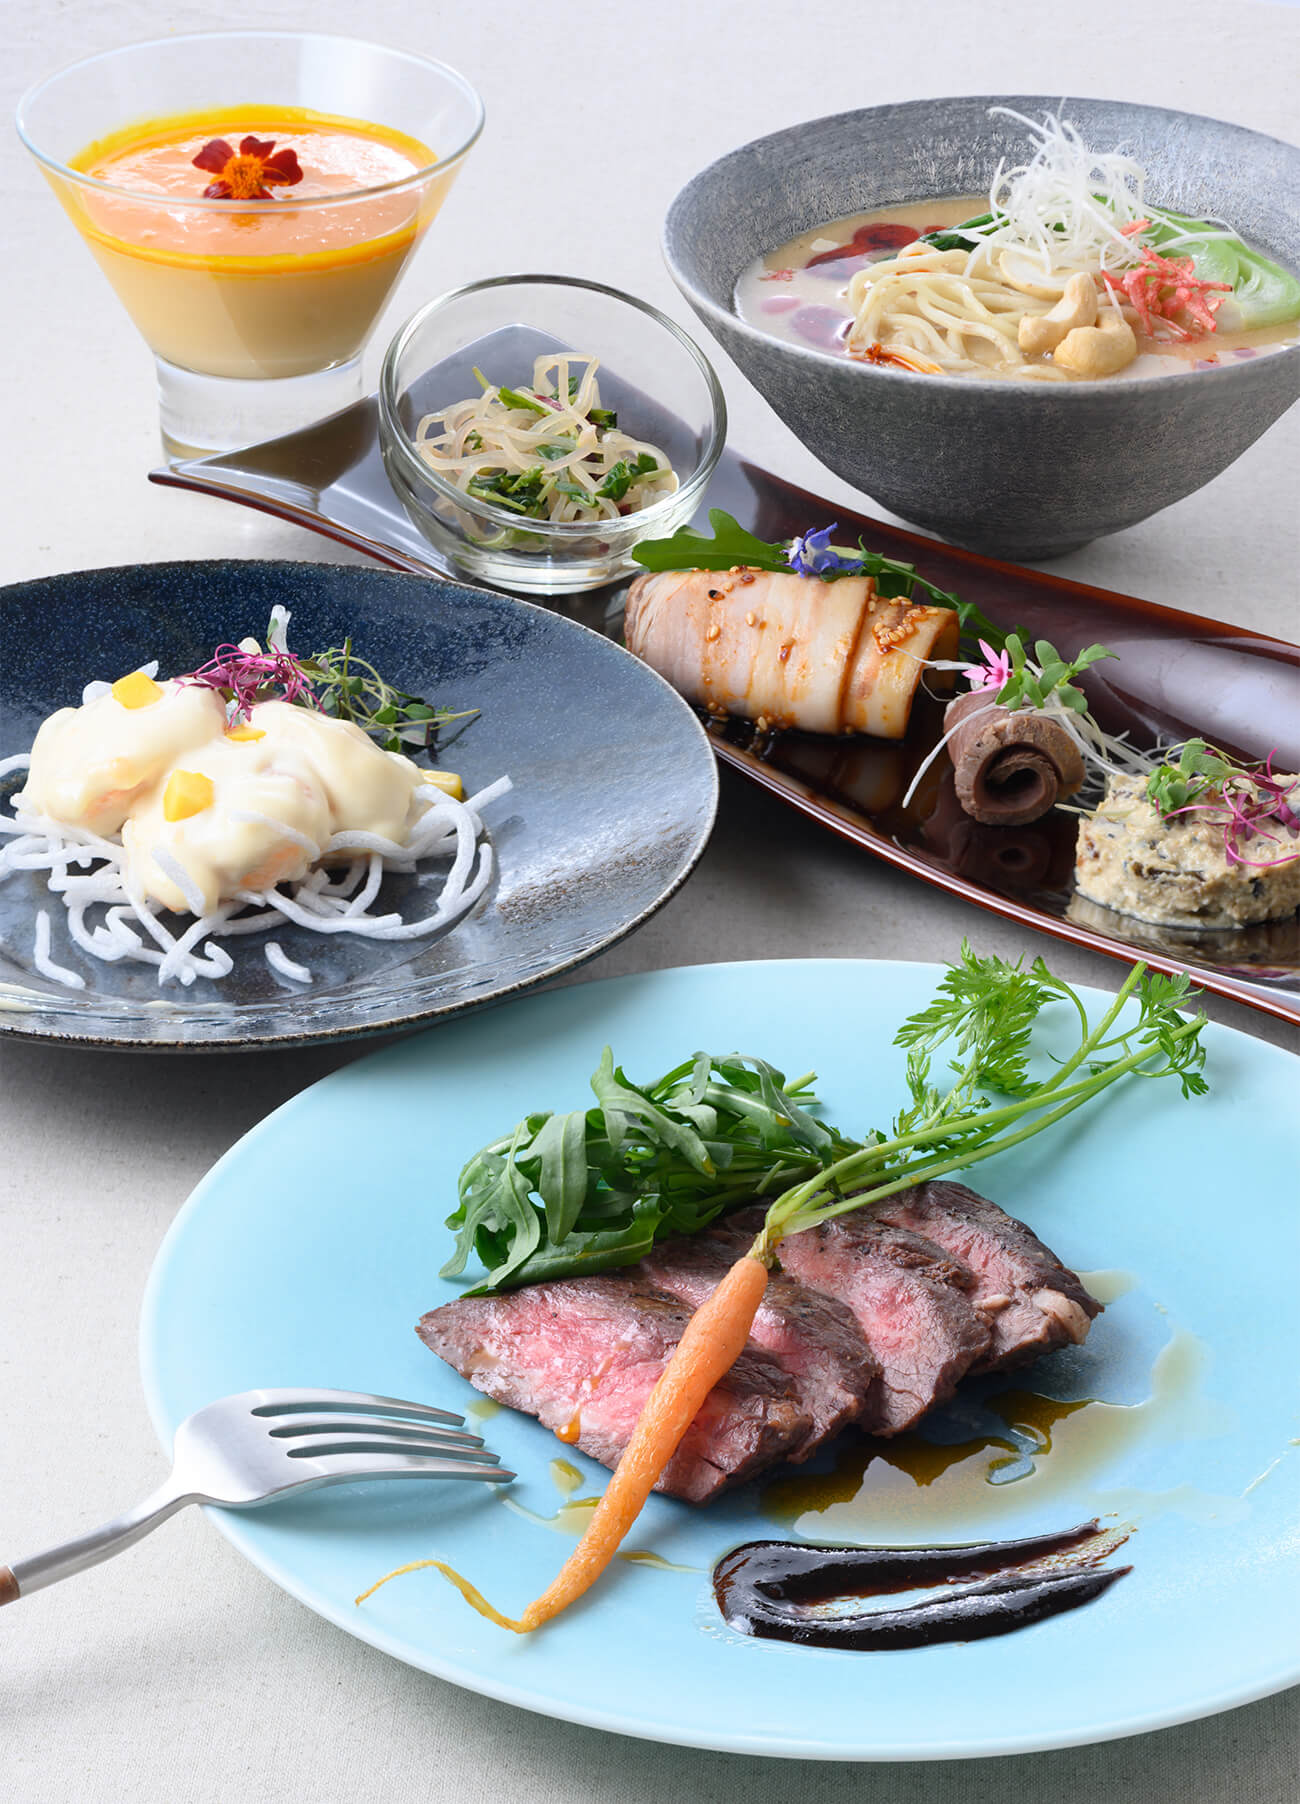 Lunch special set B set